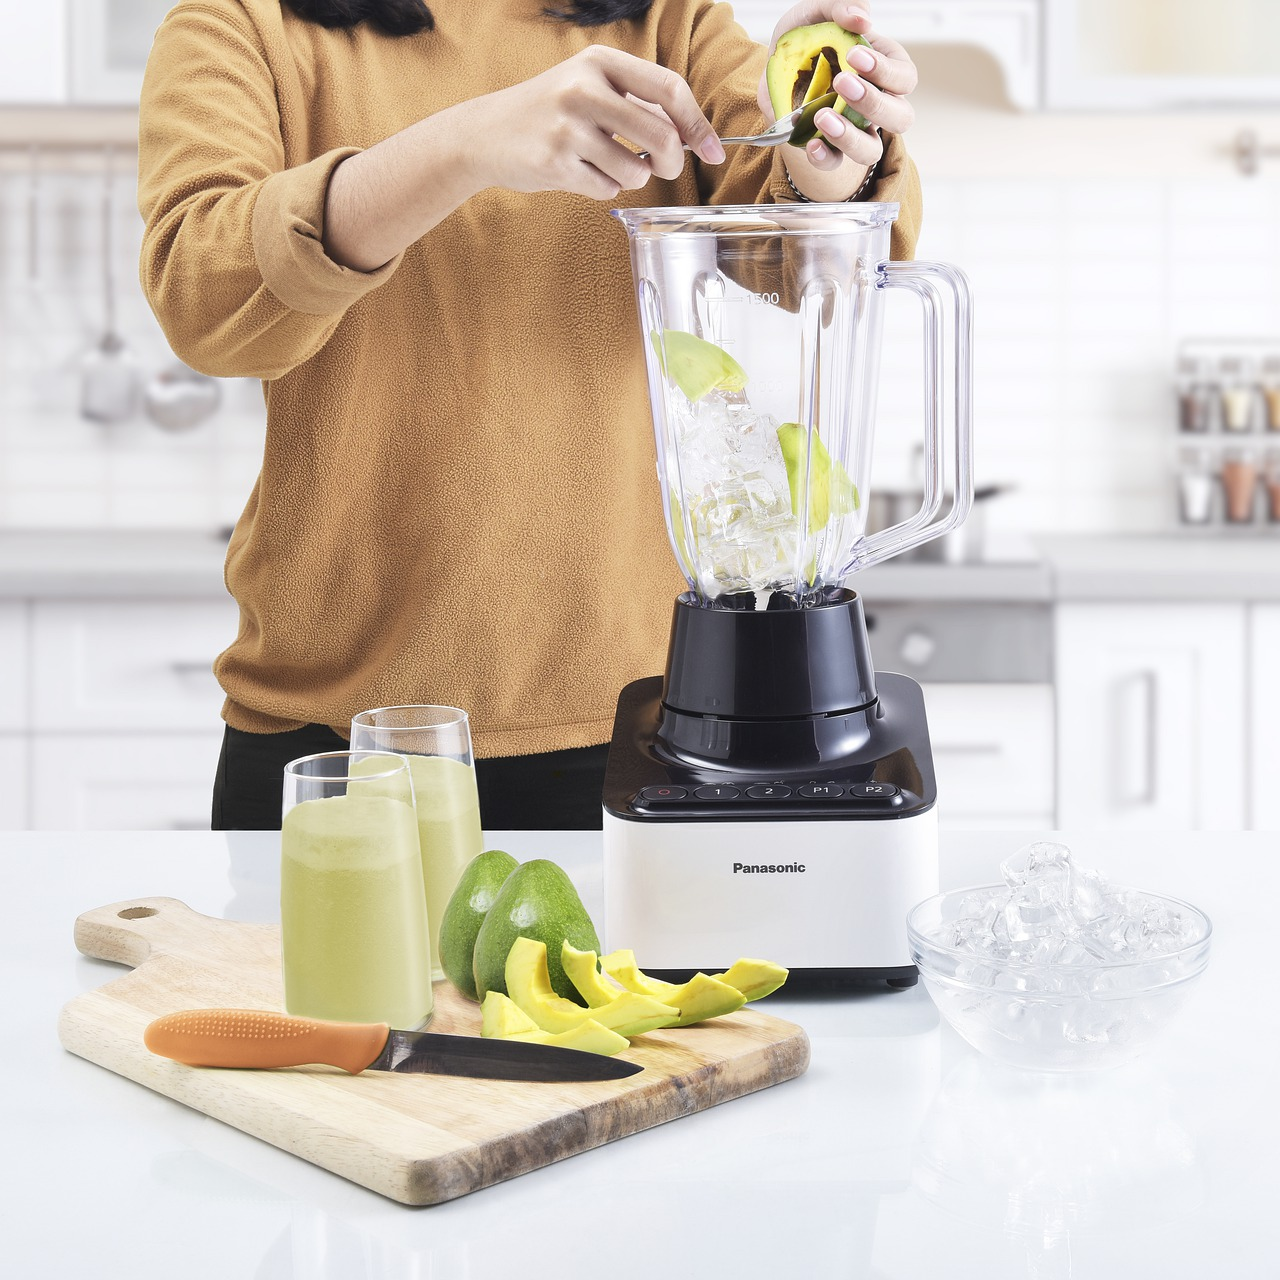 Level up your cooking skills in 2021 with these 10 smart kitchen appliances in UAE<div><span style='color:#a0a0a0;font-size:16px;text-transform:none;line-height:1.1'>Whether you're a home-cook or a professional chef, you need these items in your kitchen.</span></div>